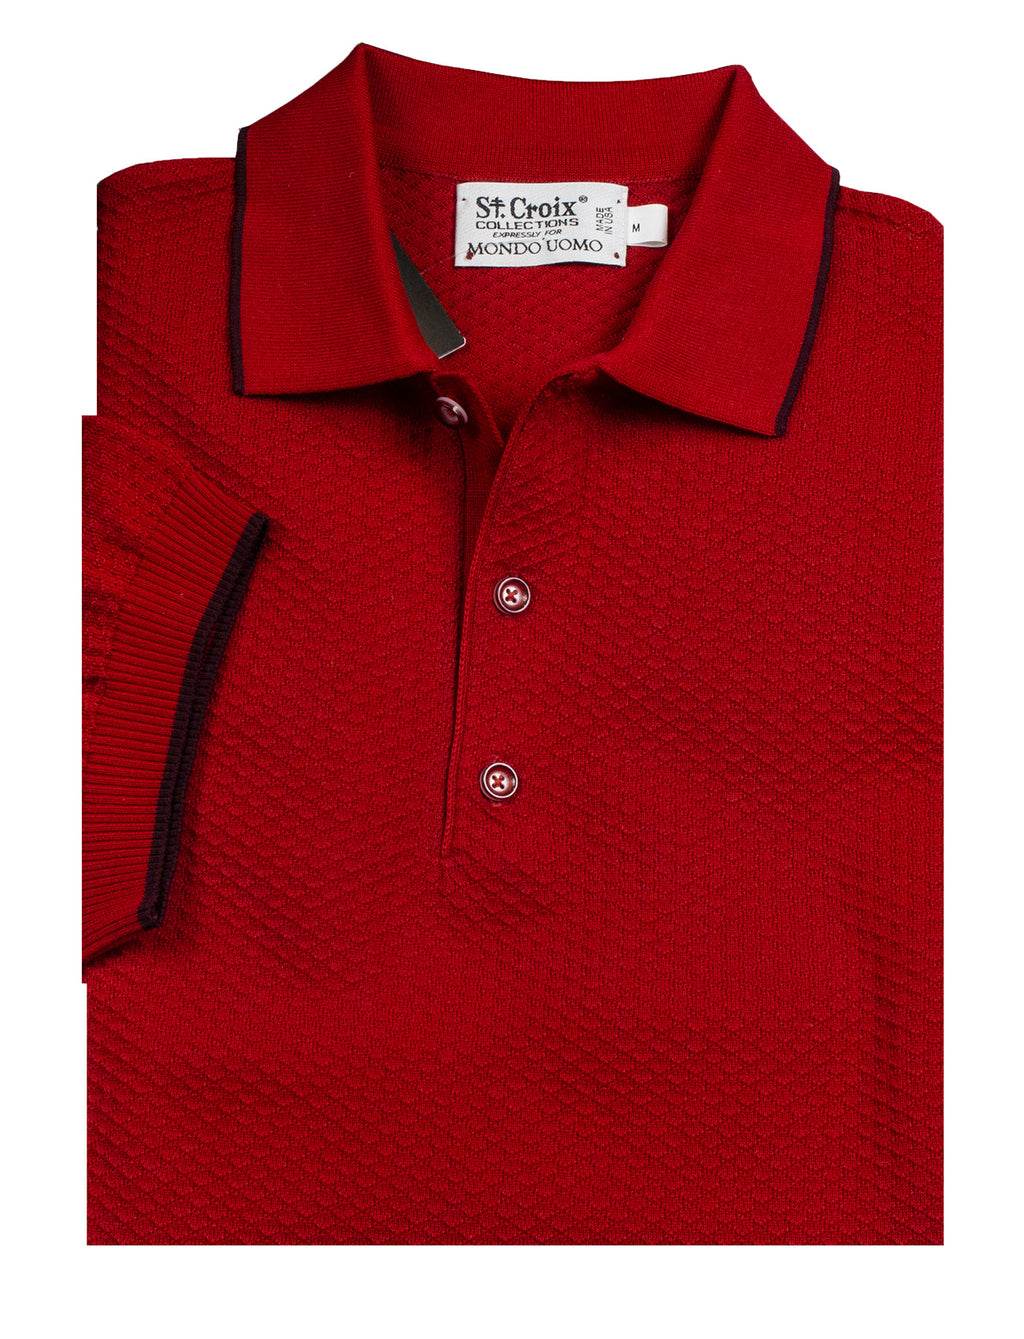 St Croix Polo Knit Red Waffle